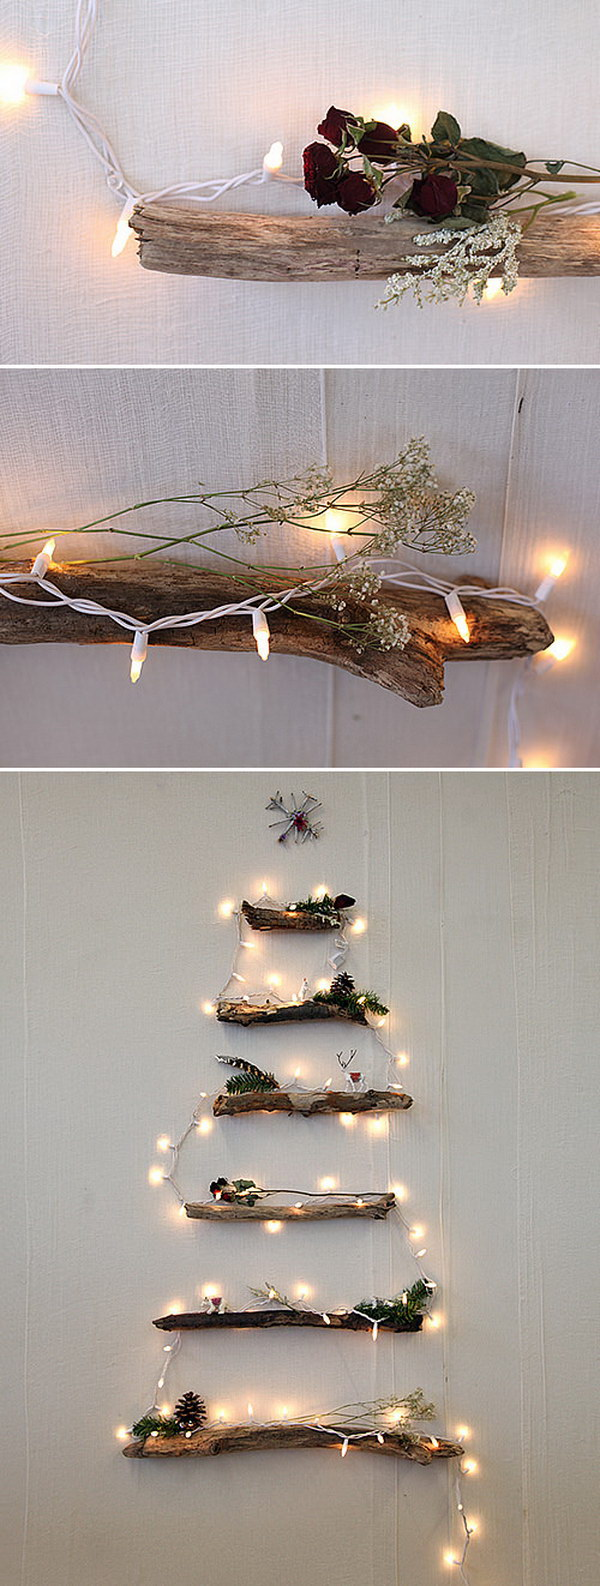 DIY Alternative Christmas Tree.